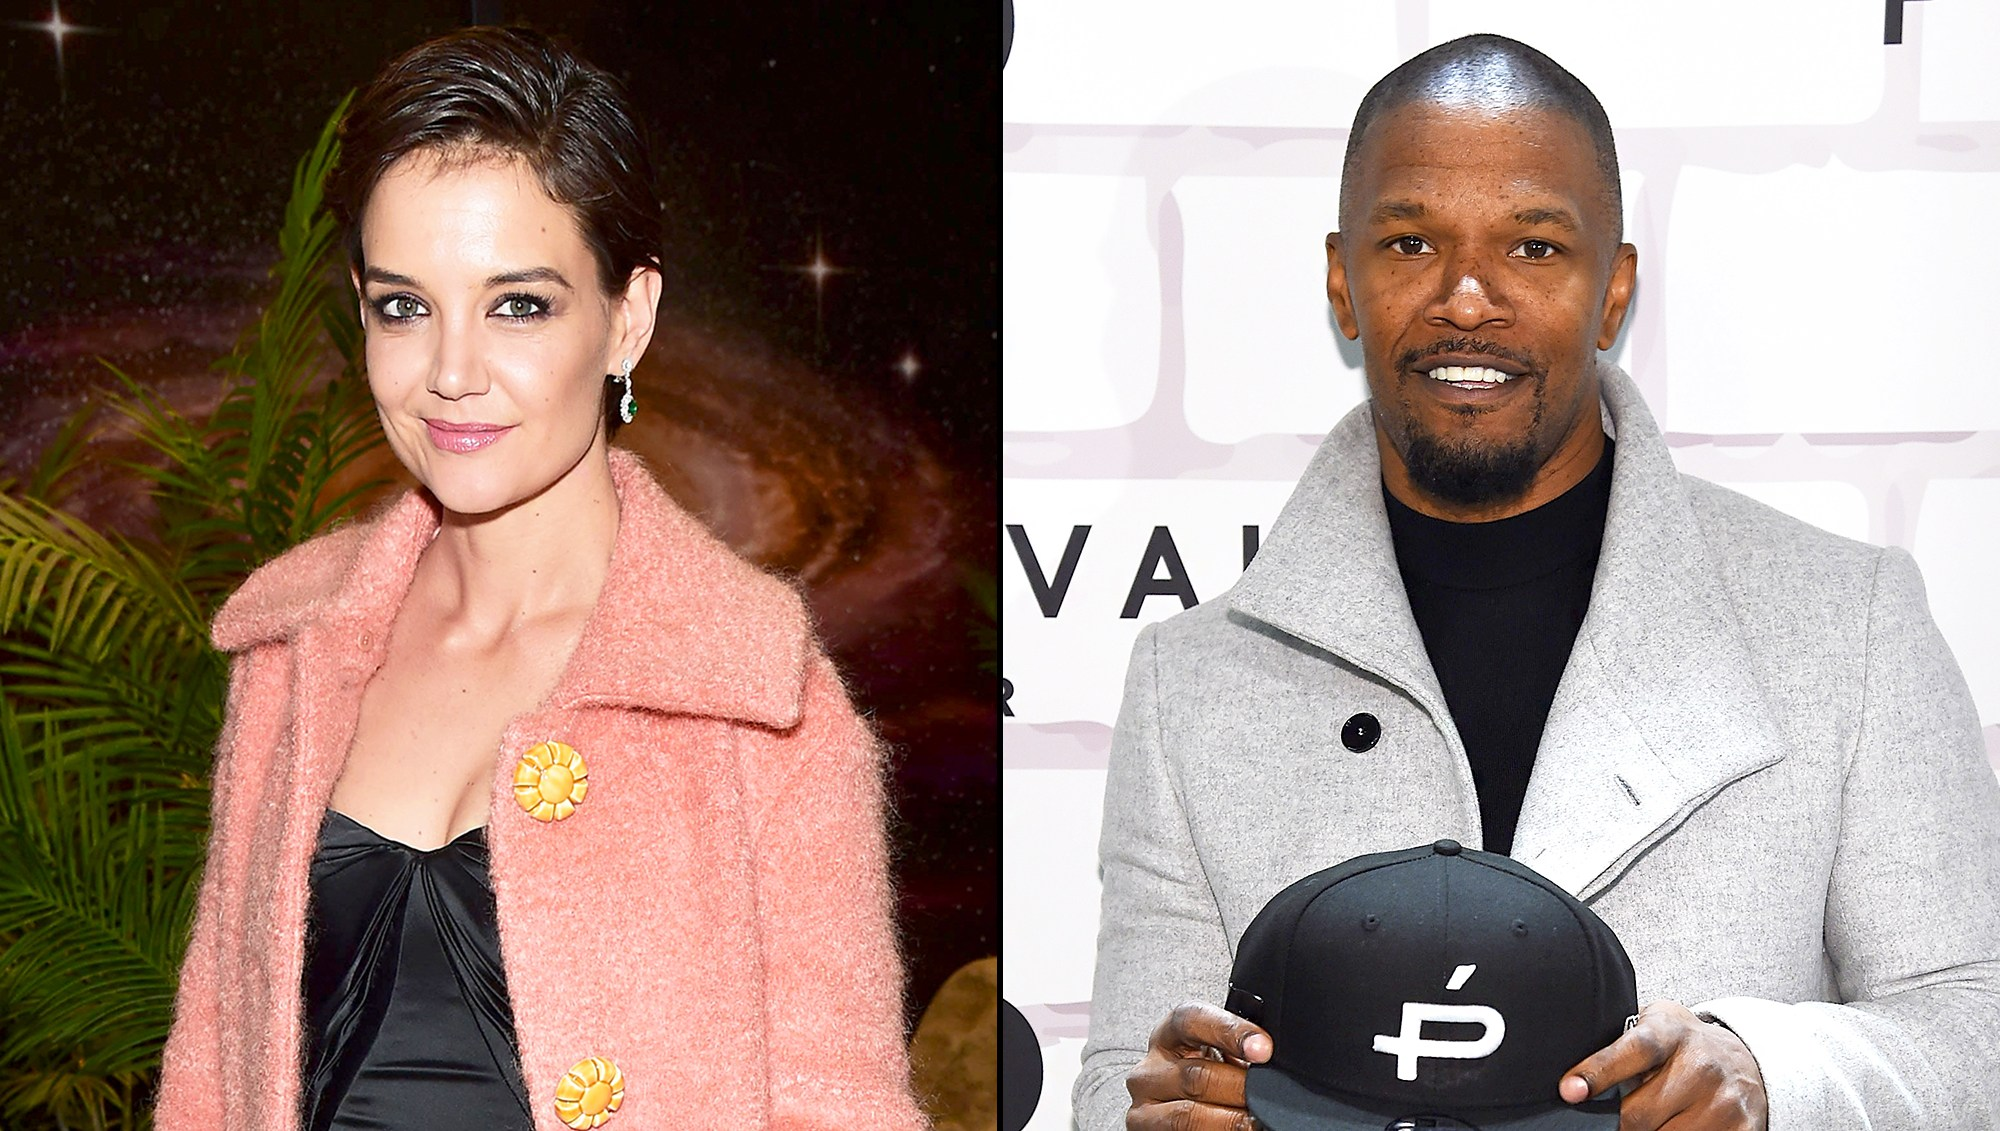 Katie Holmes and Jamie Foxx attends Prive Revaux Eyewear's New York Flagship launch on December 4, 2017 in New York City.